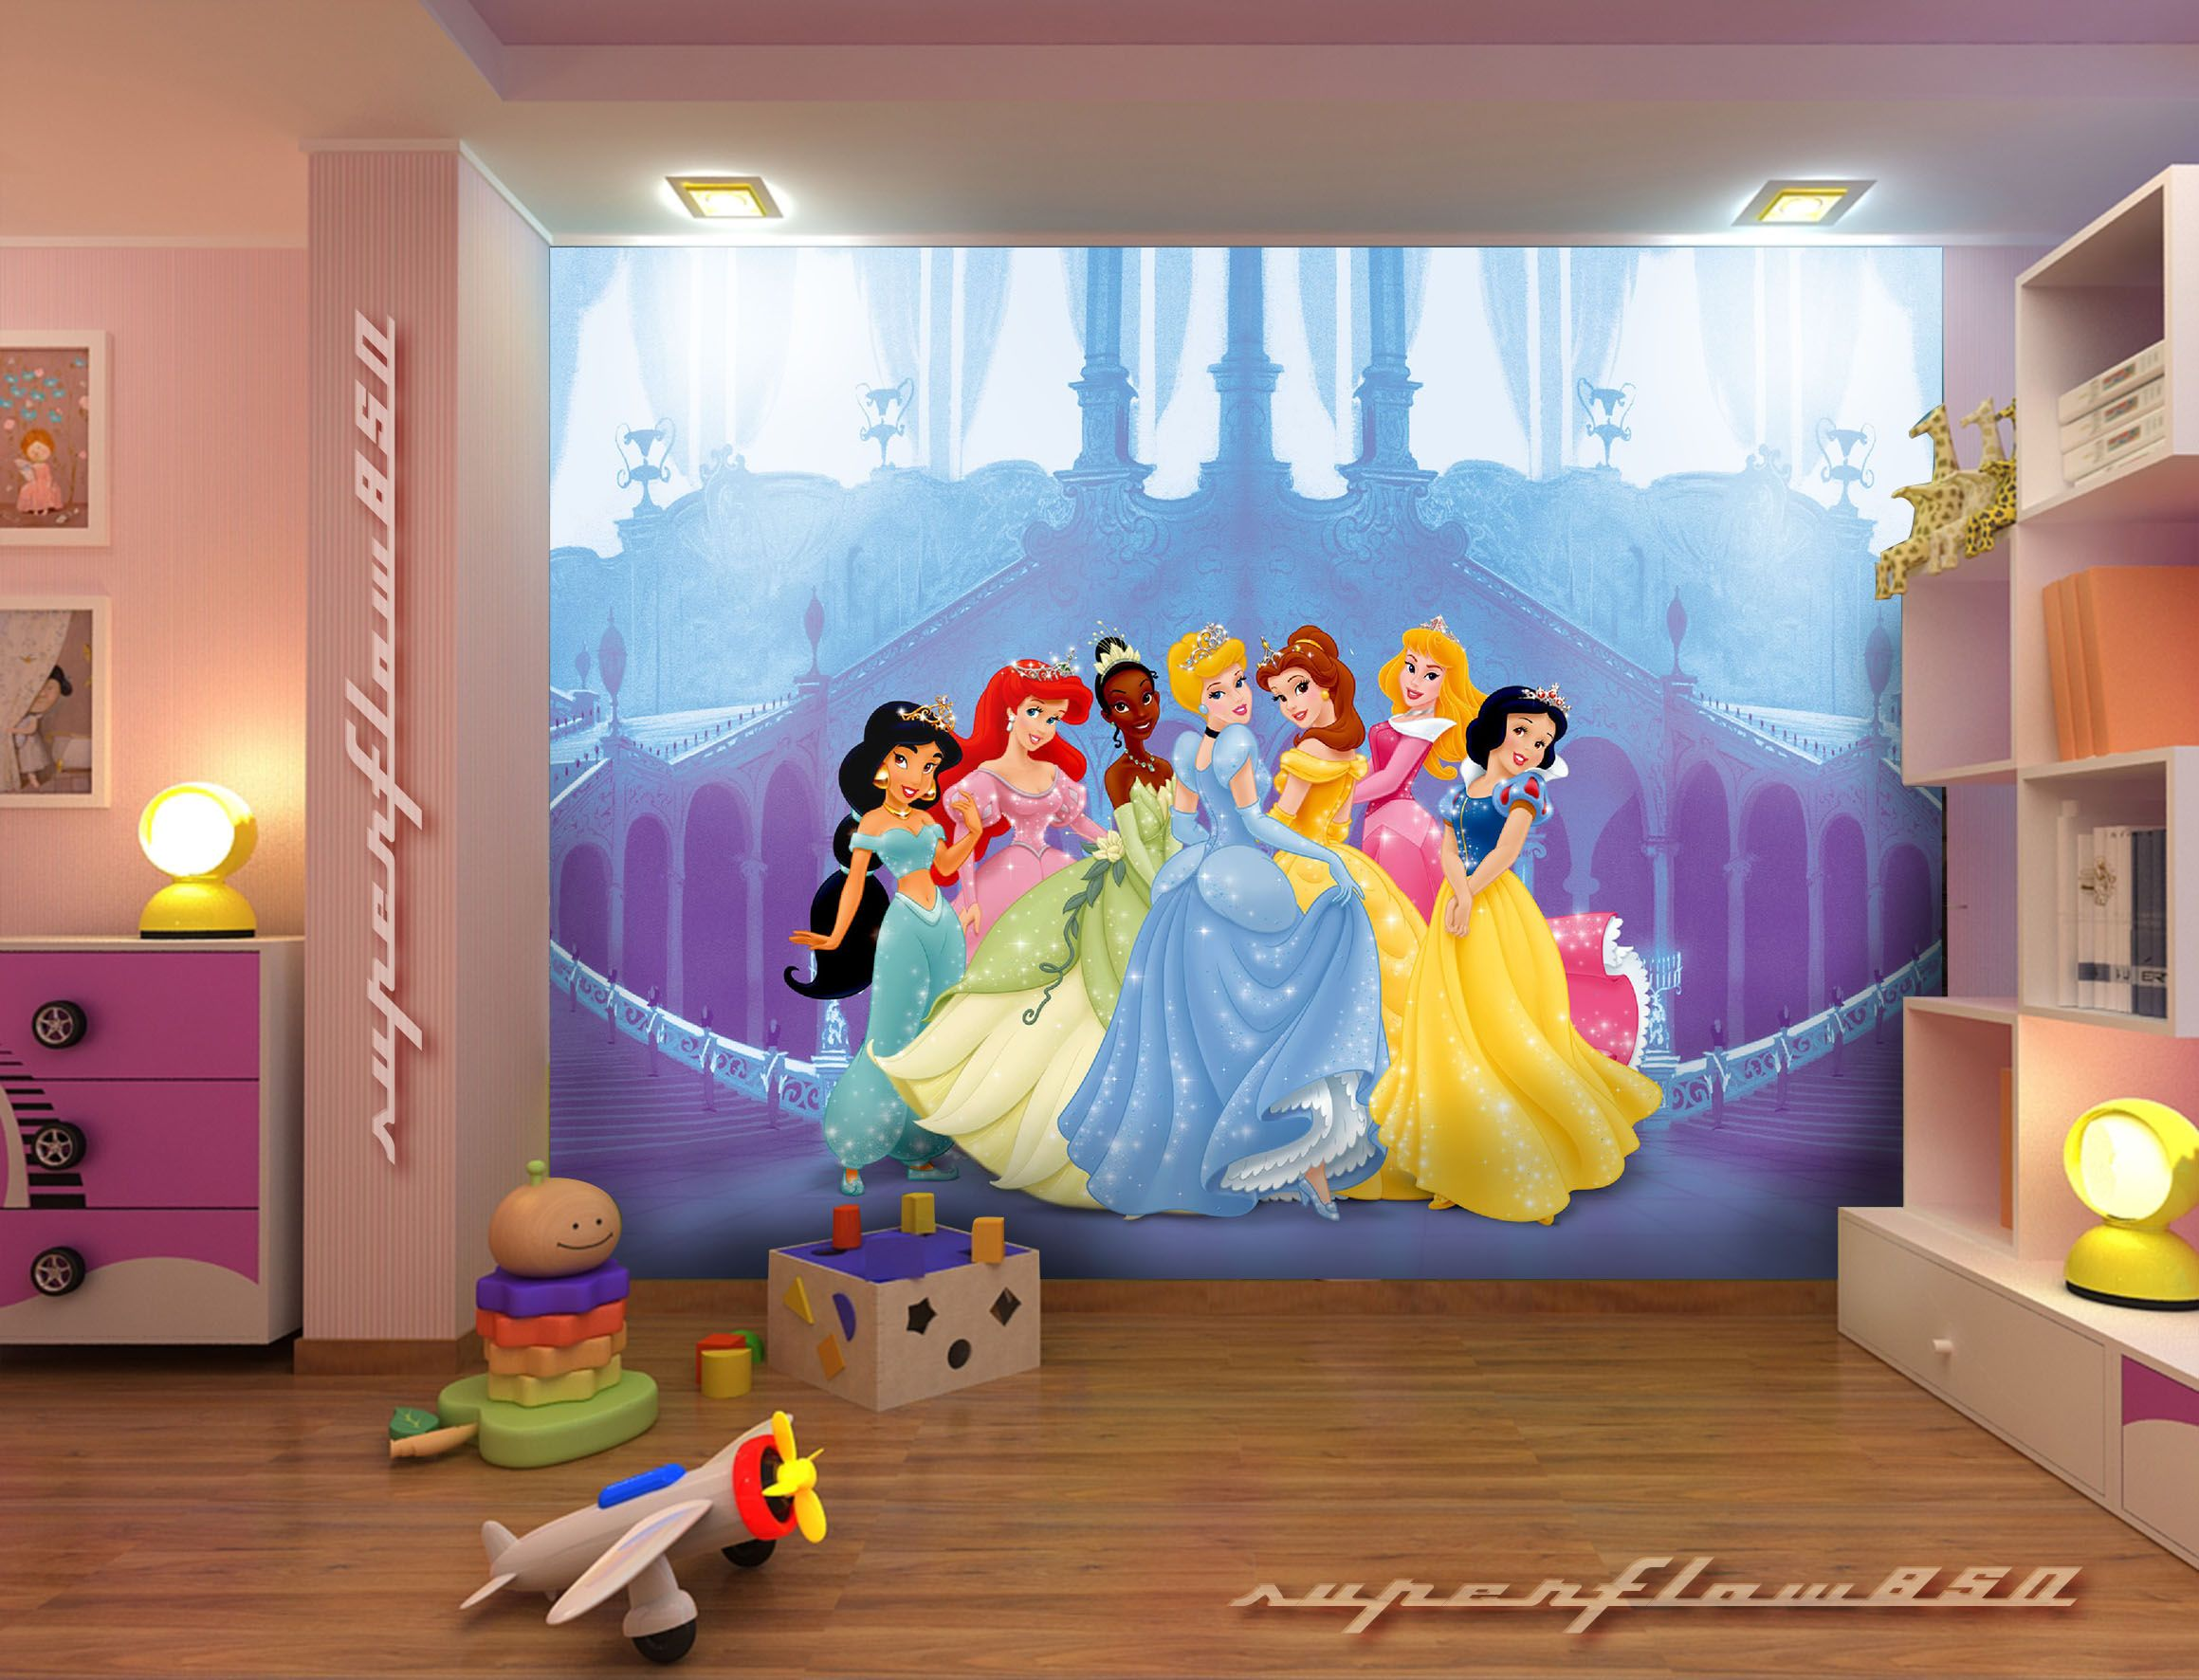 Princess Wallpaper For Bedroom Details About Kids Photo Wallpaper Disney Princesses Disney Photo